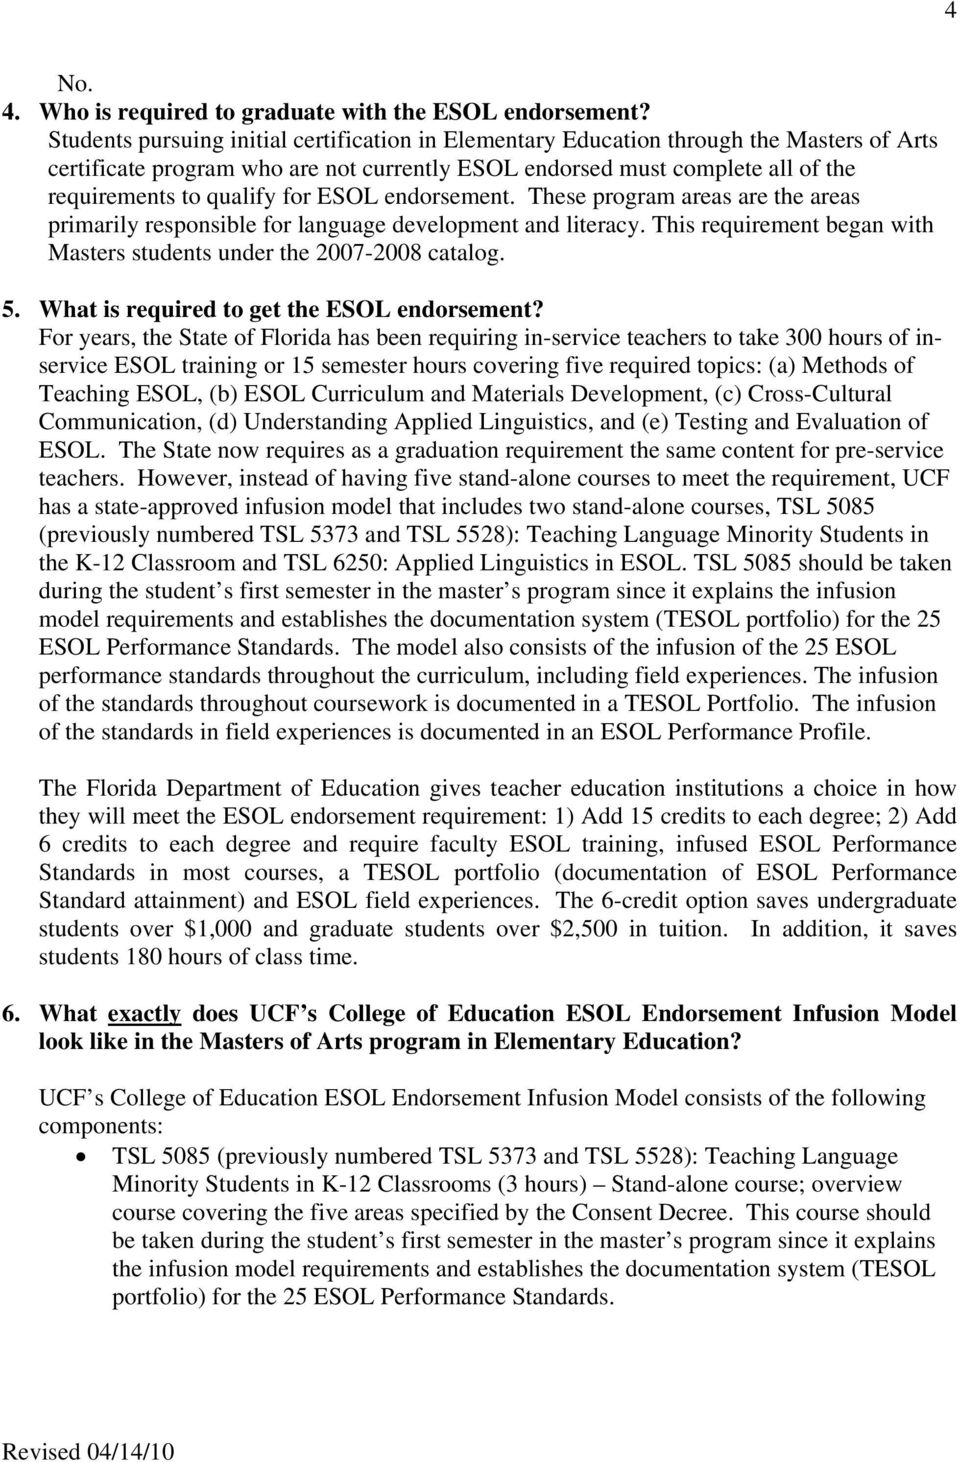 College Of Education Esol Endorsement Infusion Model Student